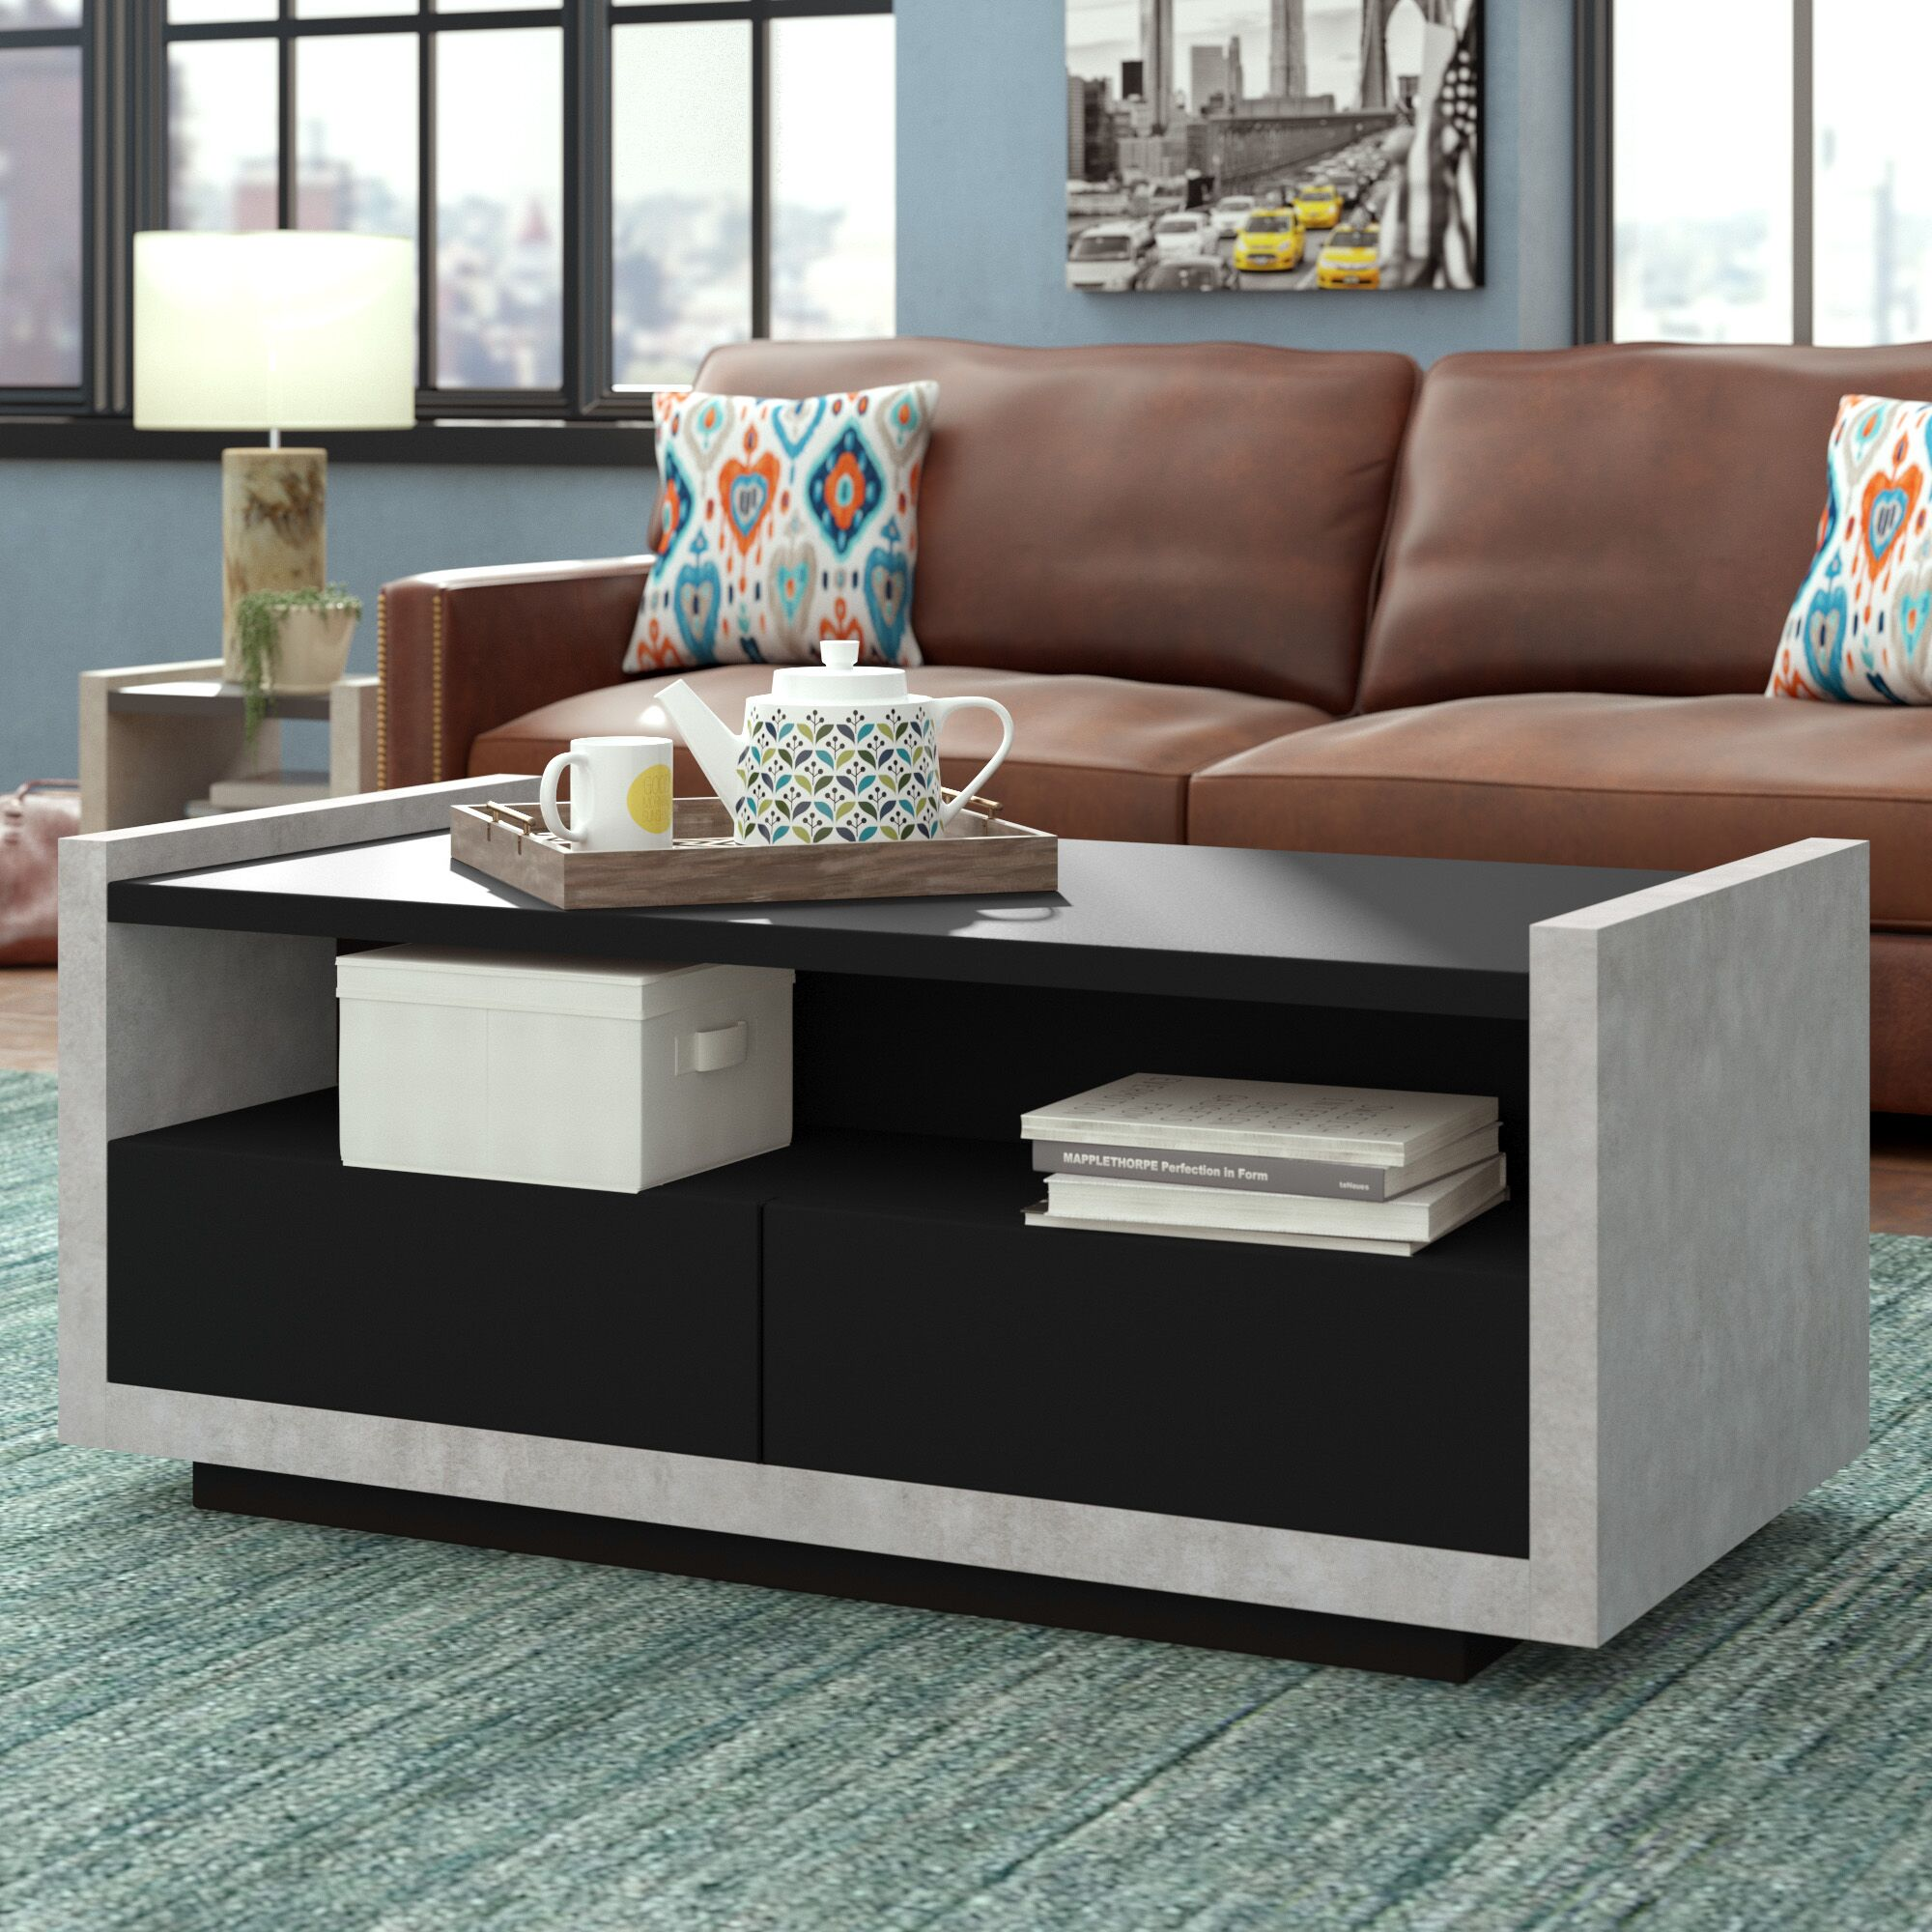 Luzerne Contemporary Coffee Table with Magazine Rack Color: Black